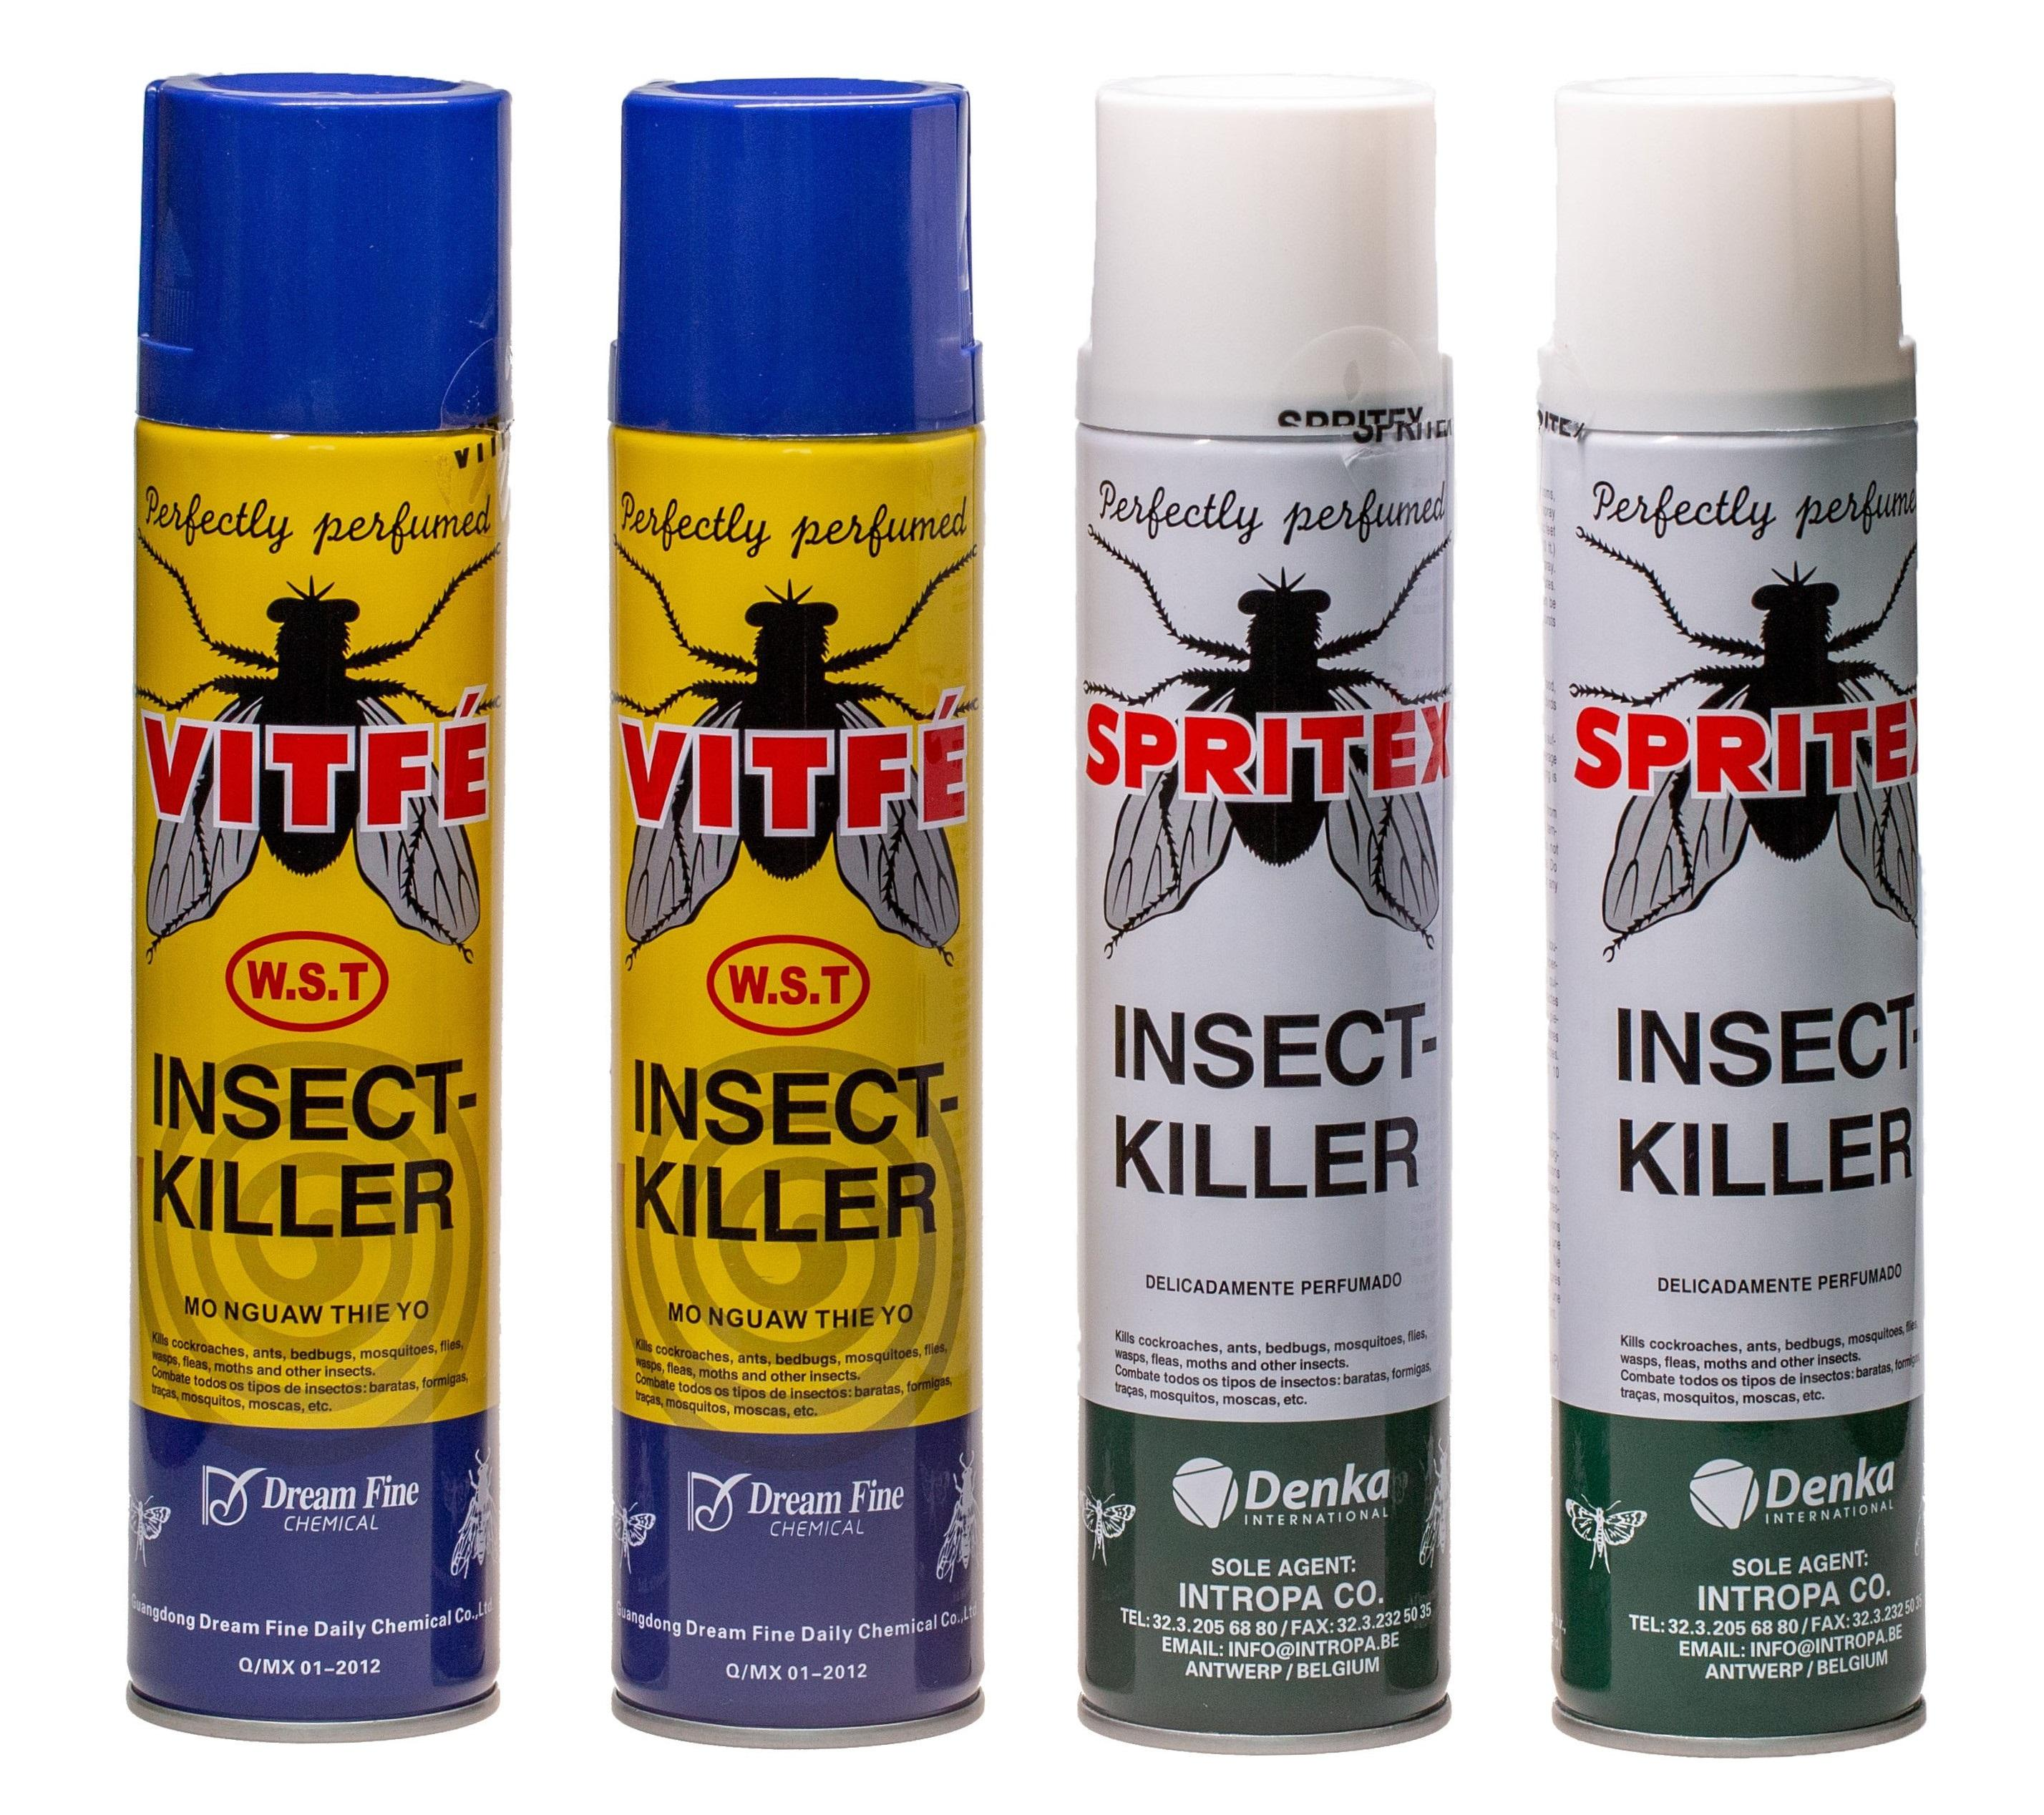 spritex flying insects killing spray/anti cockroach flies mosquito/aerosol insecticide spray